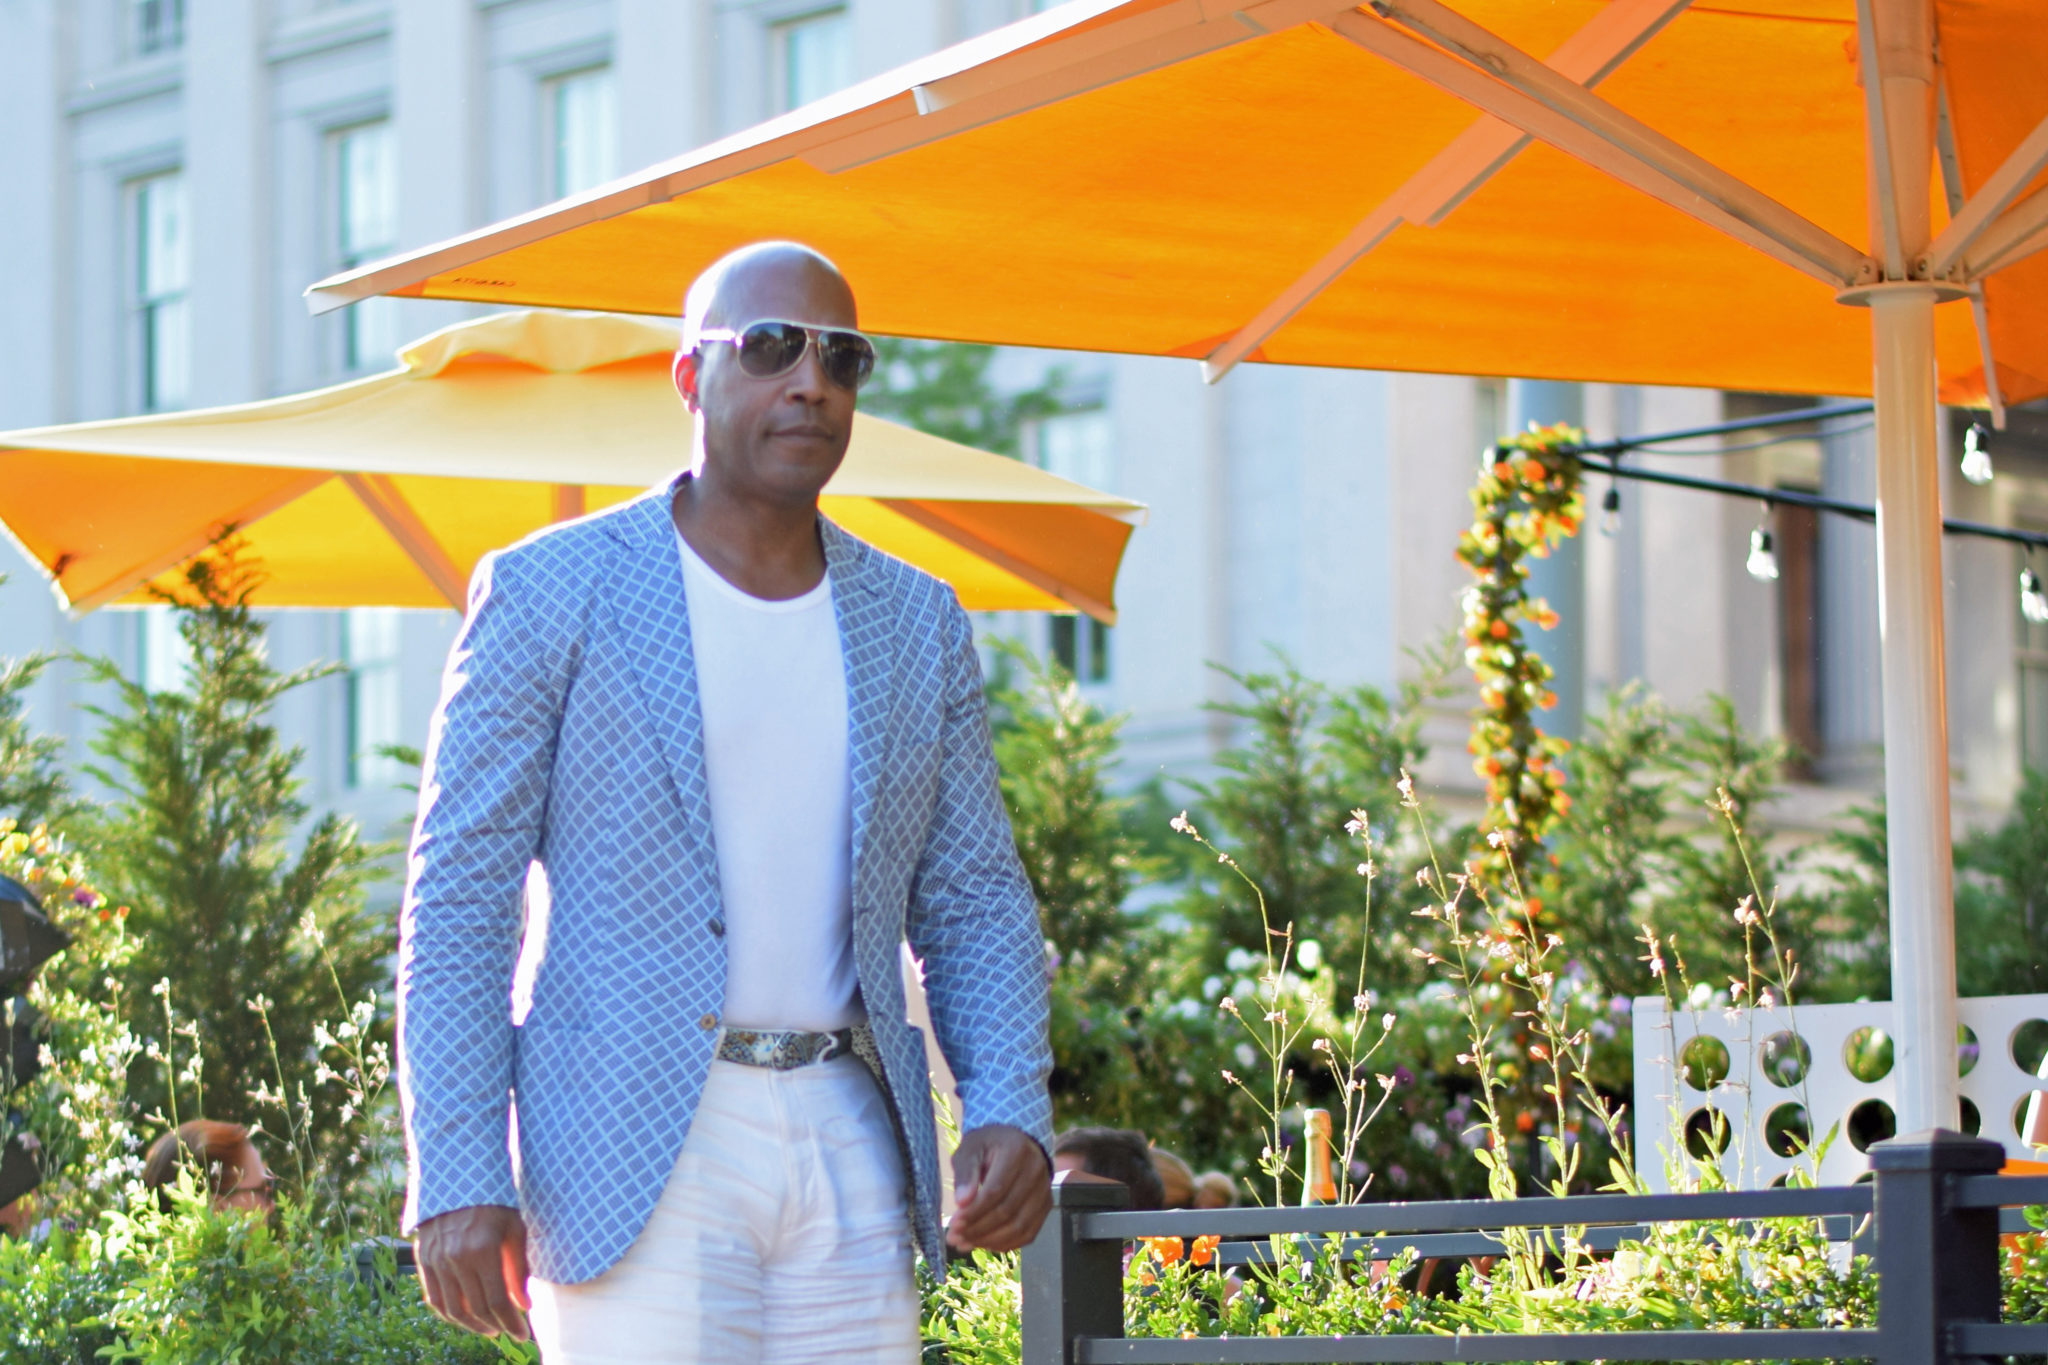 Veuve Clicquot Polo Classic Viewing Party